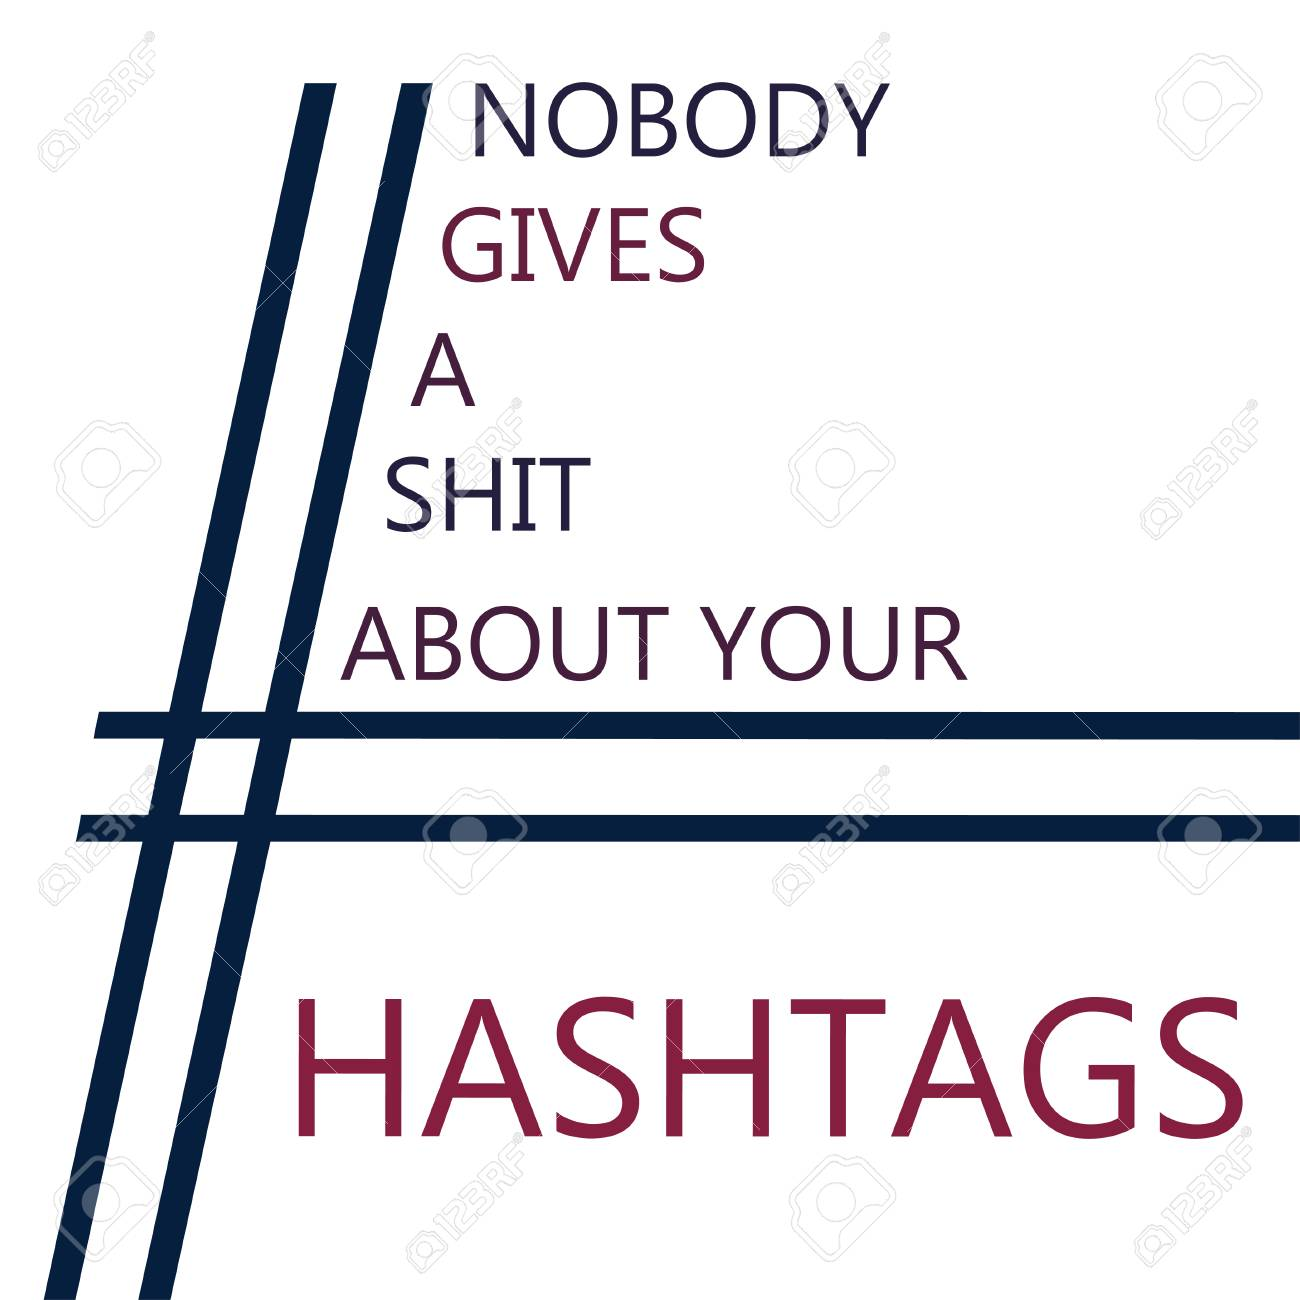 Hashtag Meaning Understandable Symbol Text Phrase Royalty Free